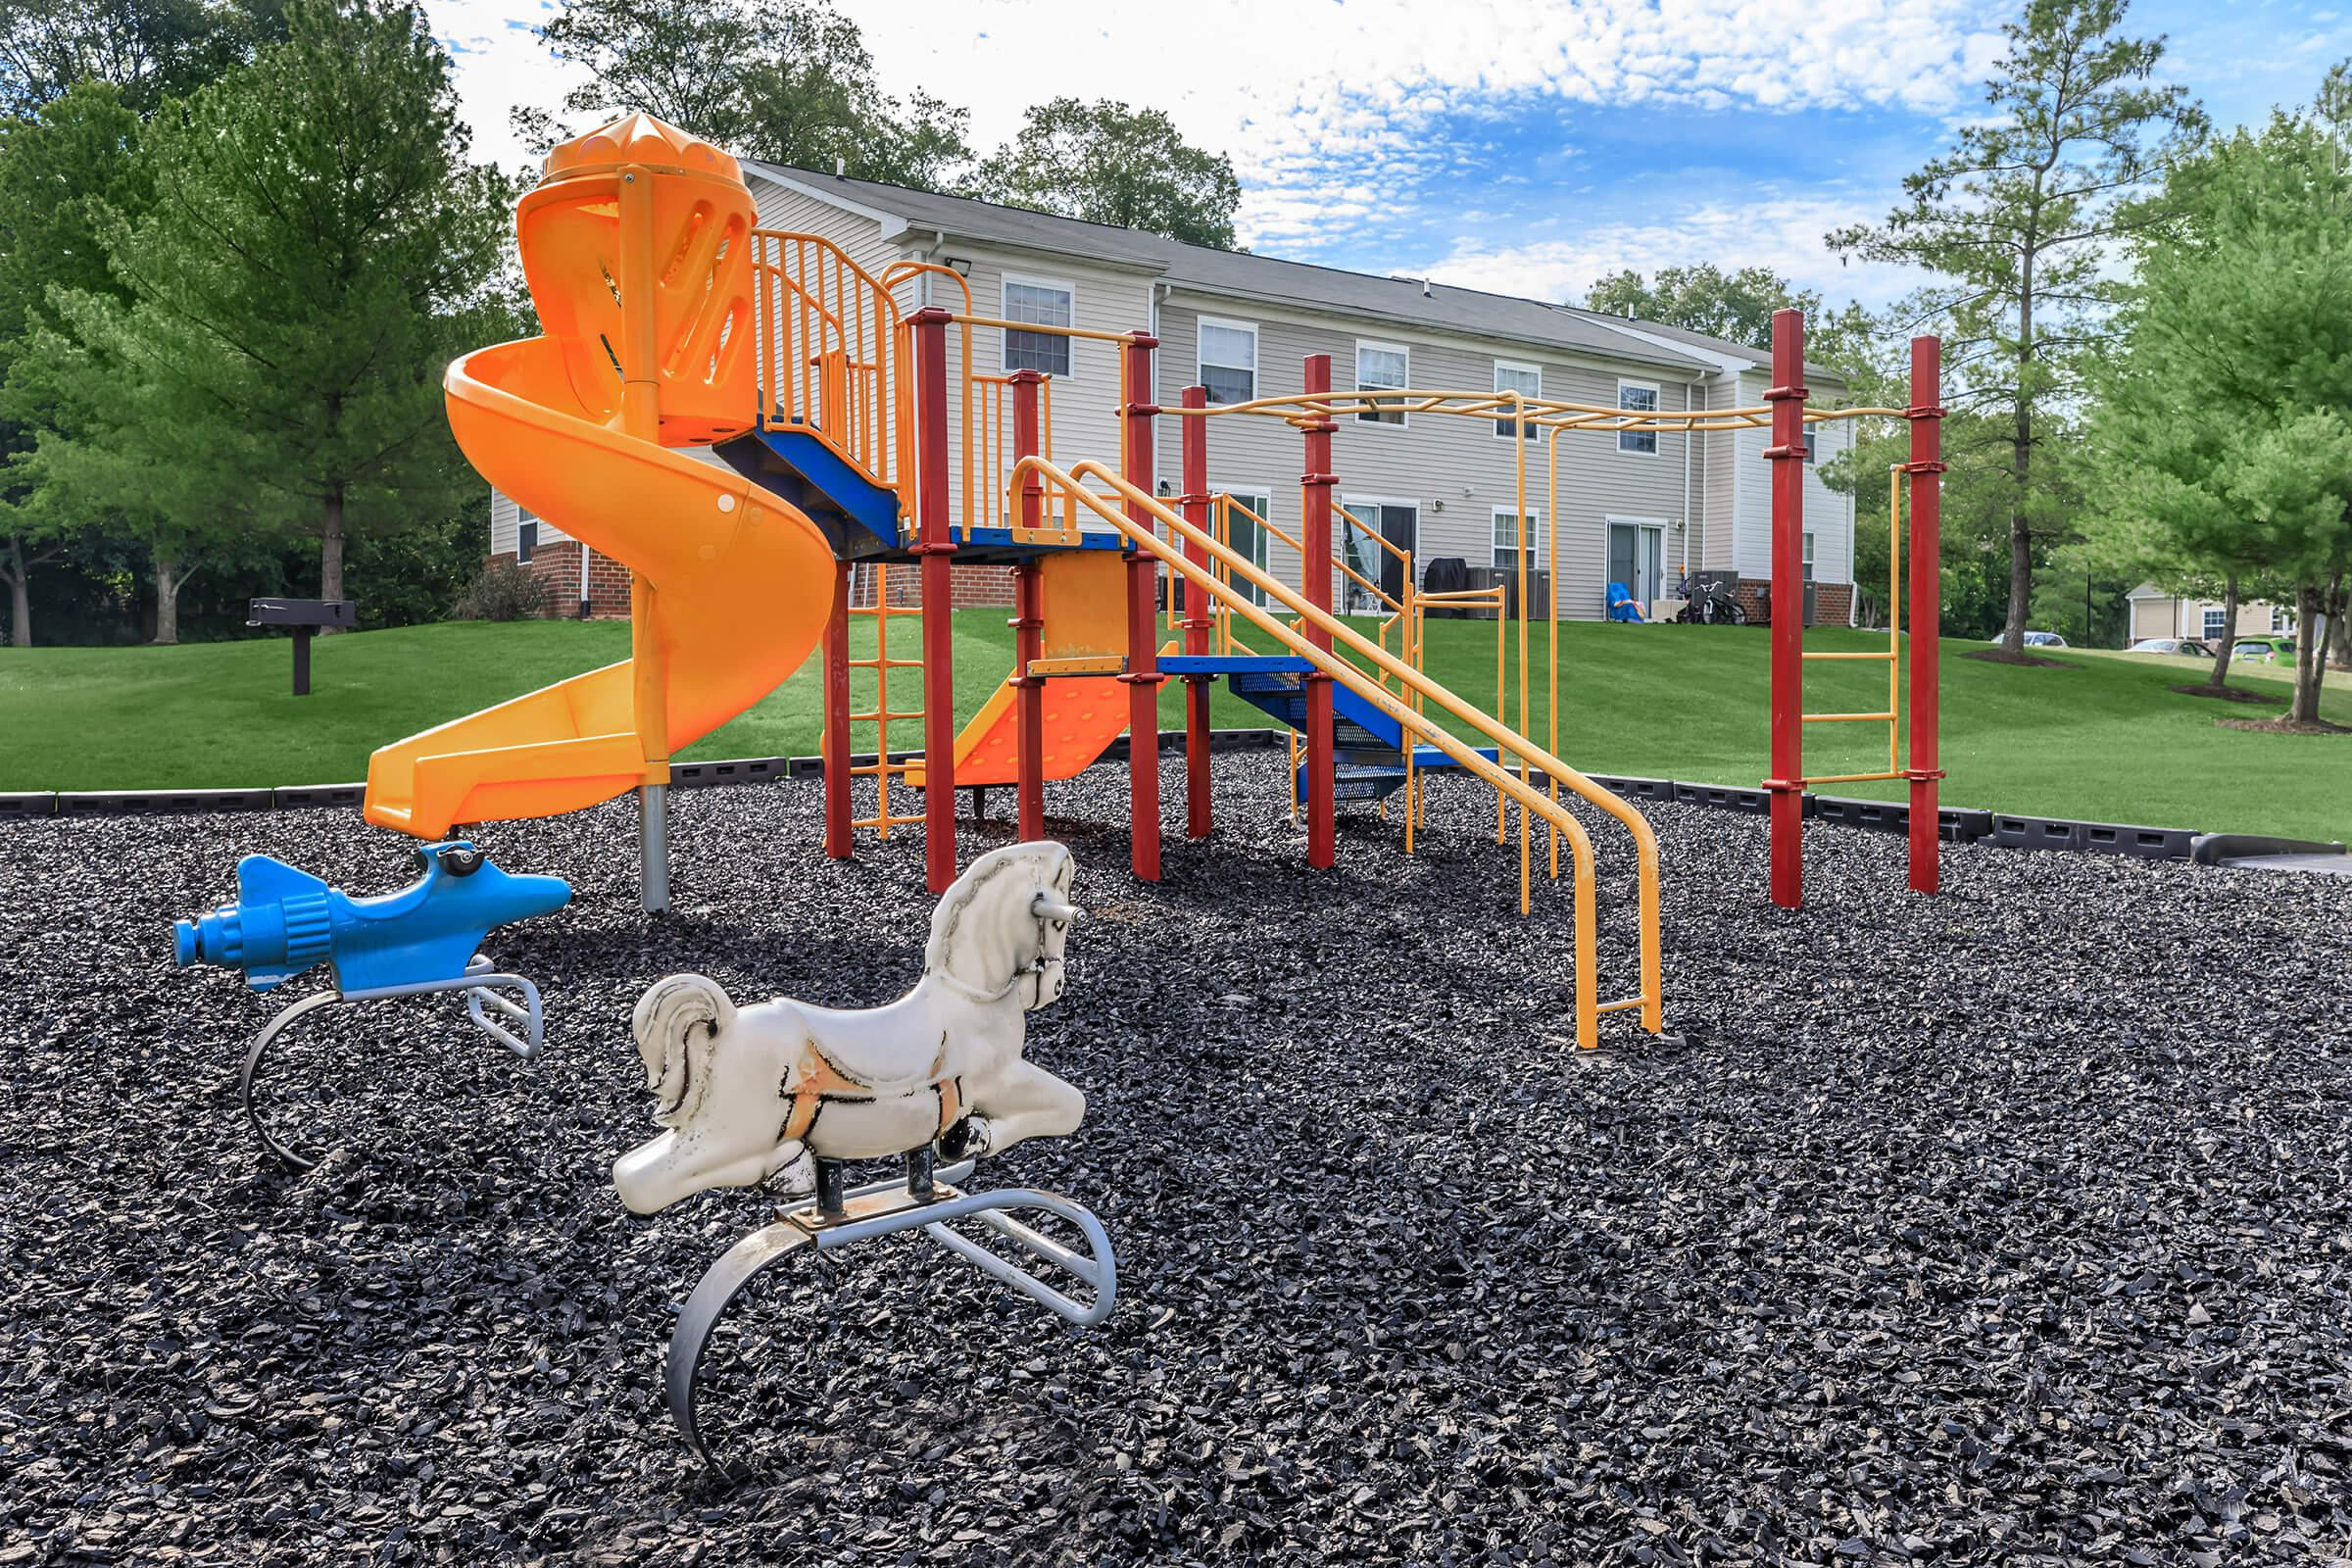 a close up of a playground